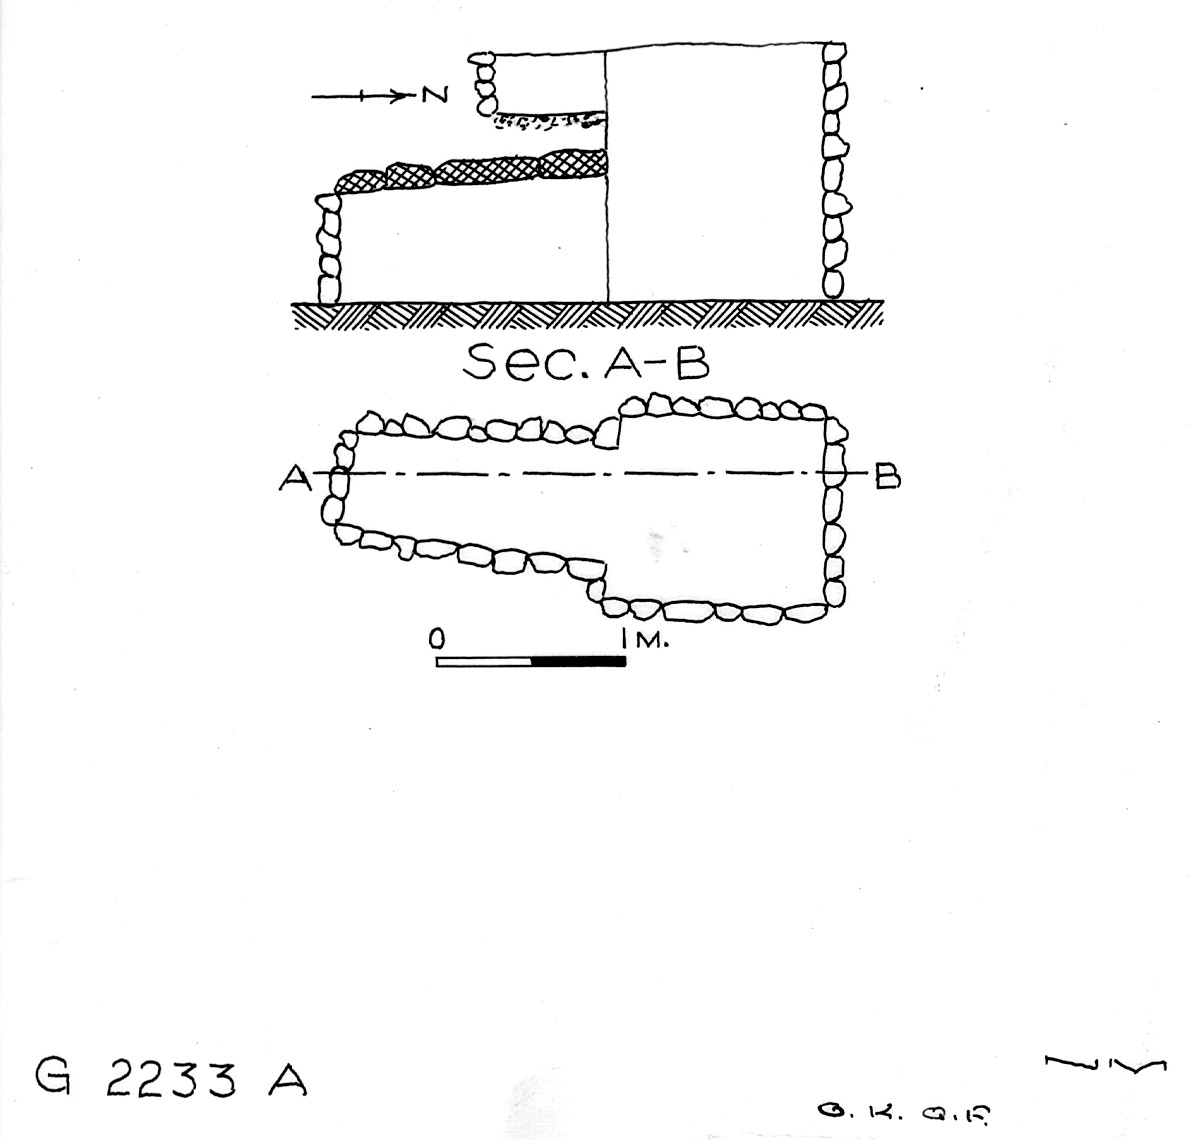 Maps and plans: G 2233, Shaft A